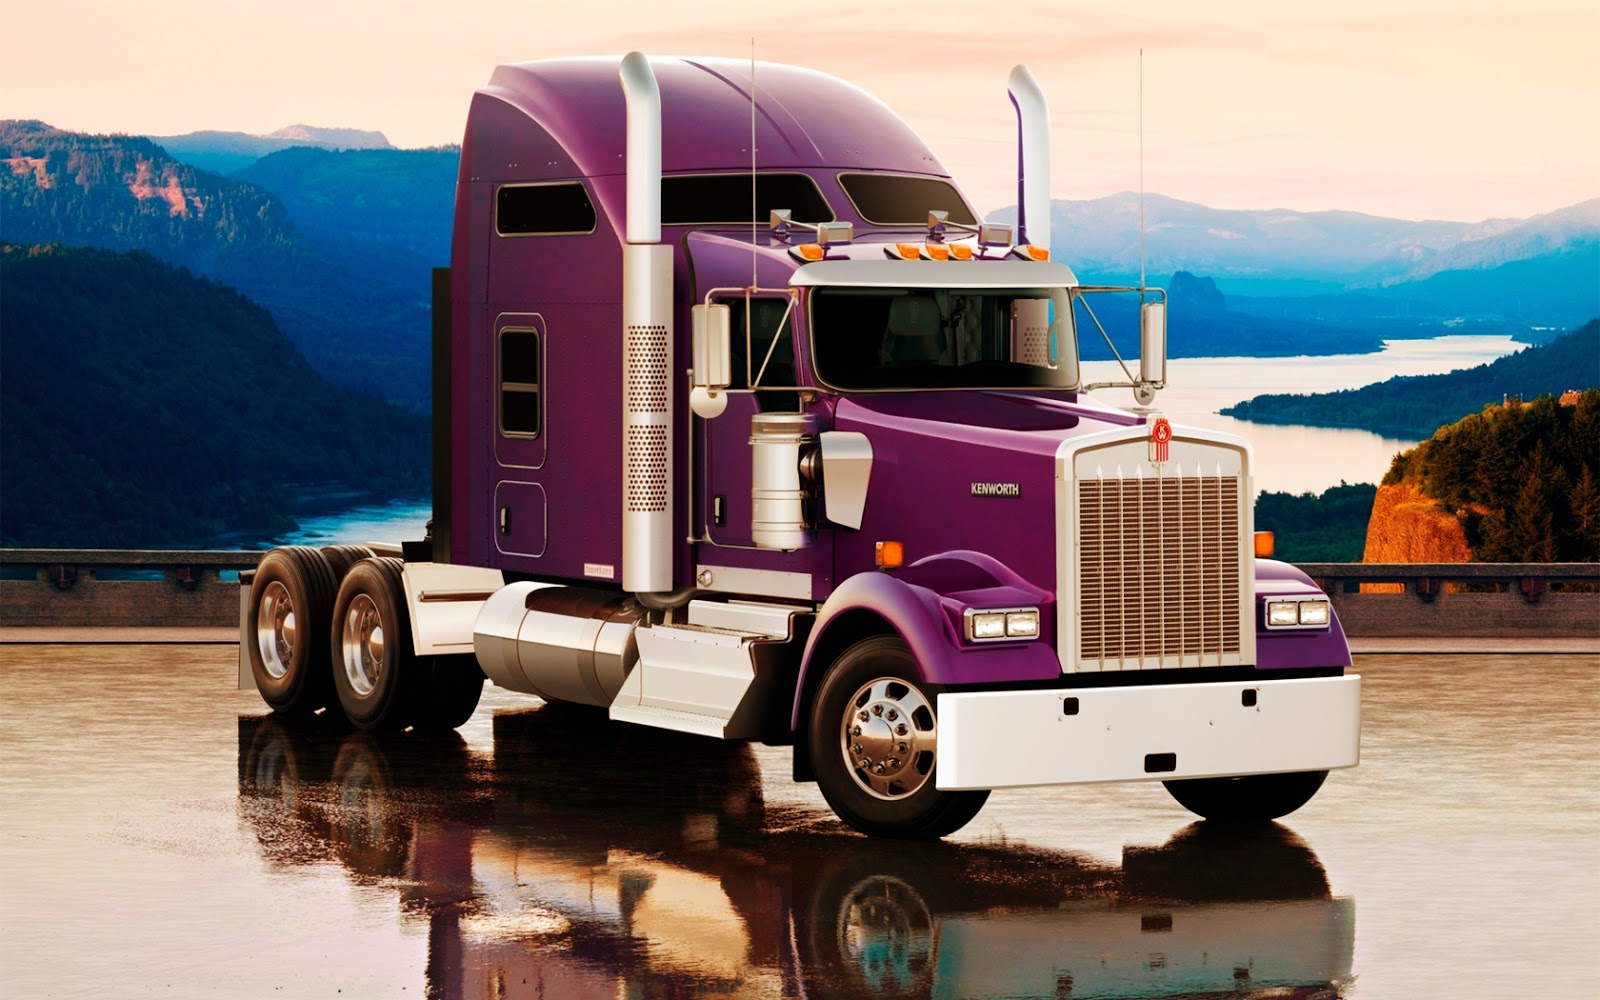 High Definition Truck Wallpapers Image to Wallpaper